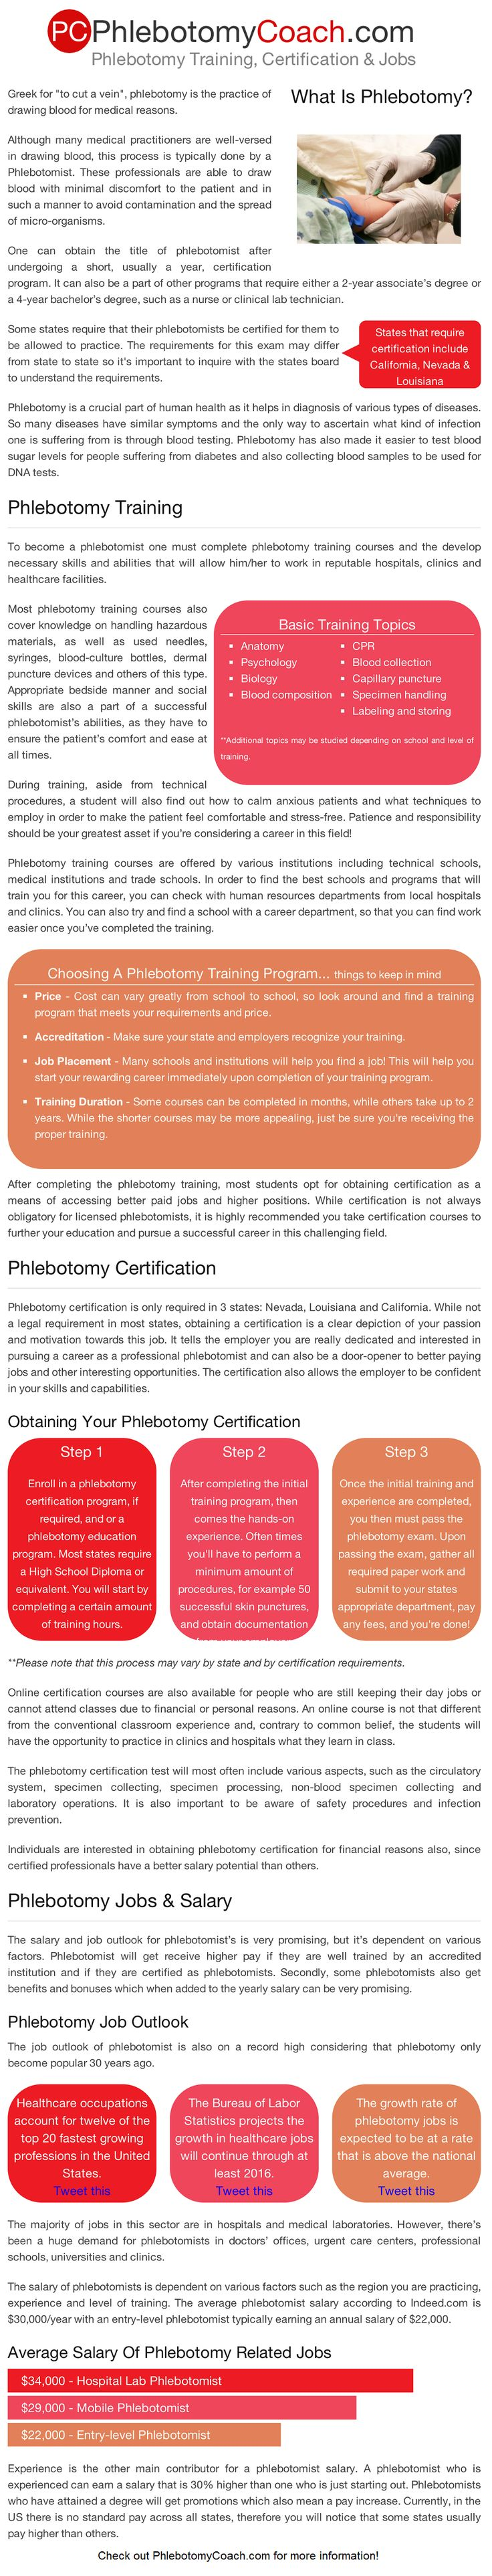 25 dental technician jobs pinterest phlebotomy education training resource do you want to become a phlebotomist heres how xflitez Image collections